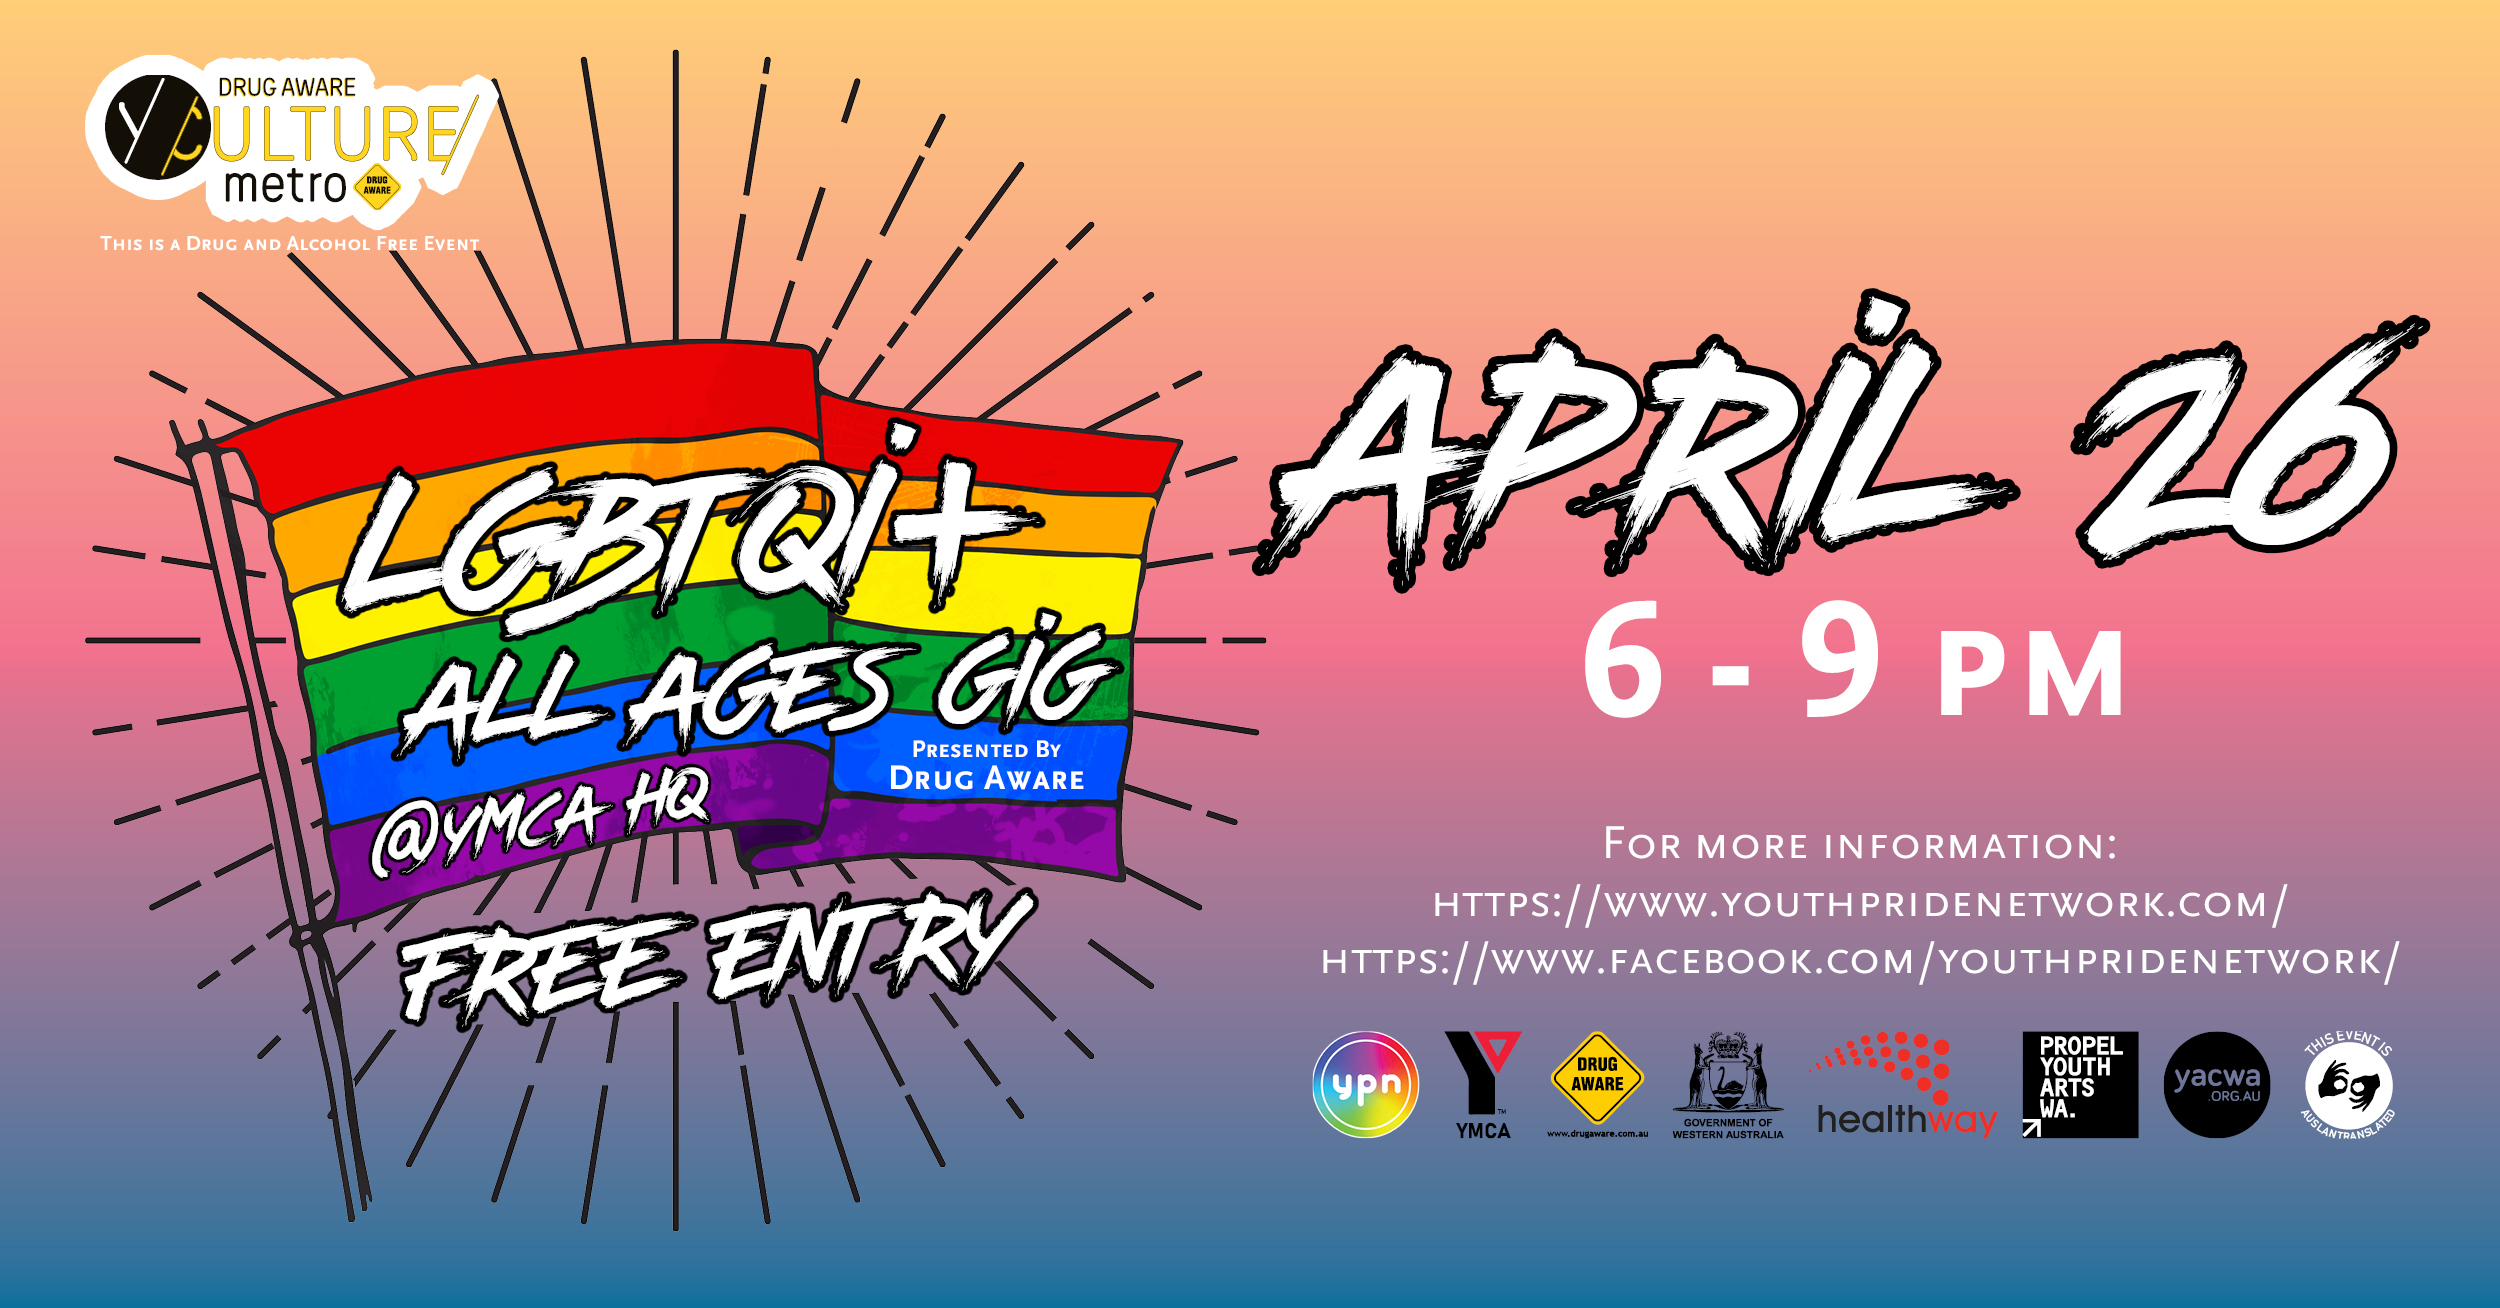 Youth Pride Network [Leederville, WA]